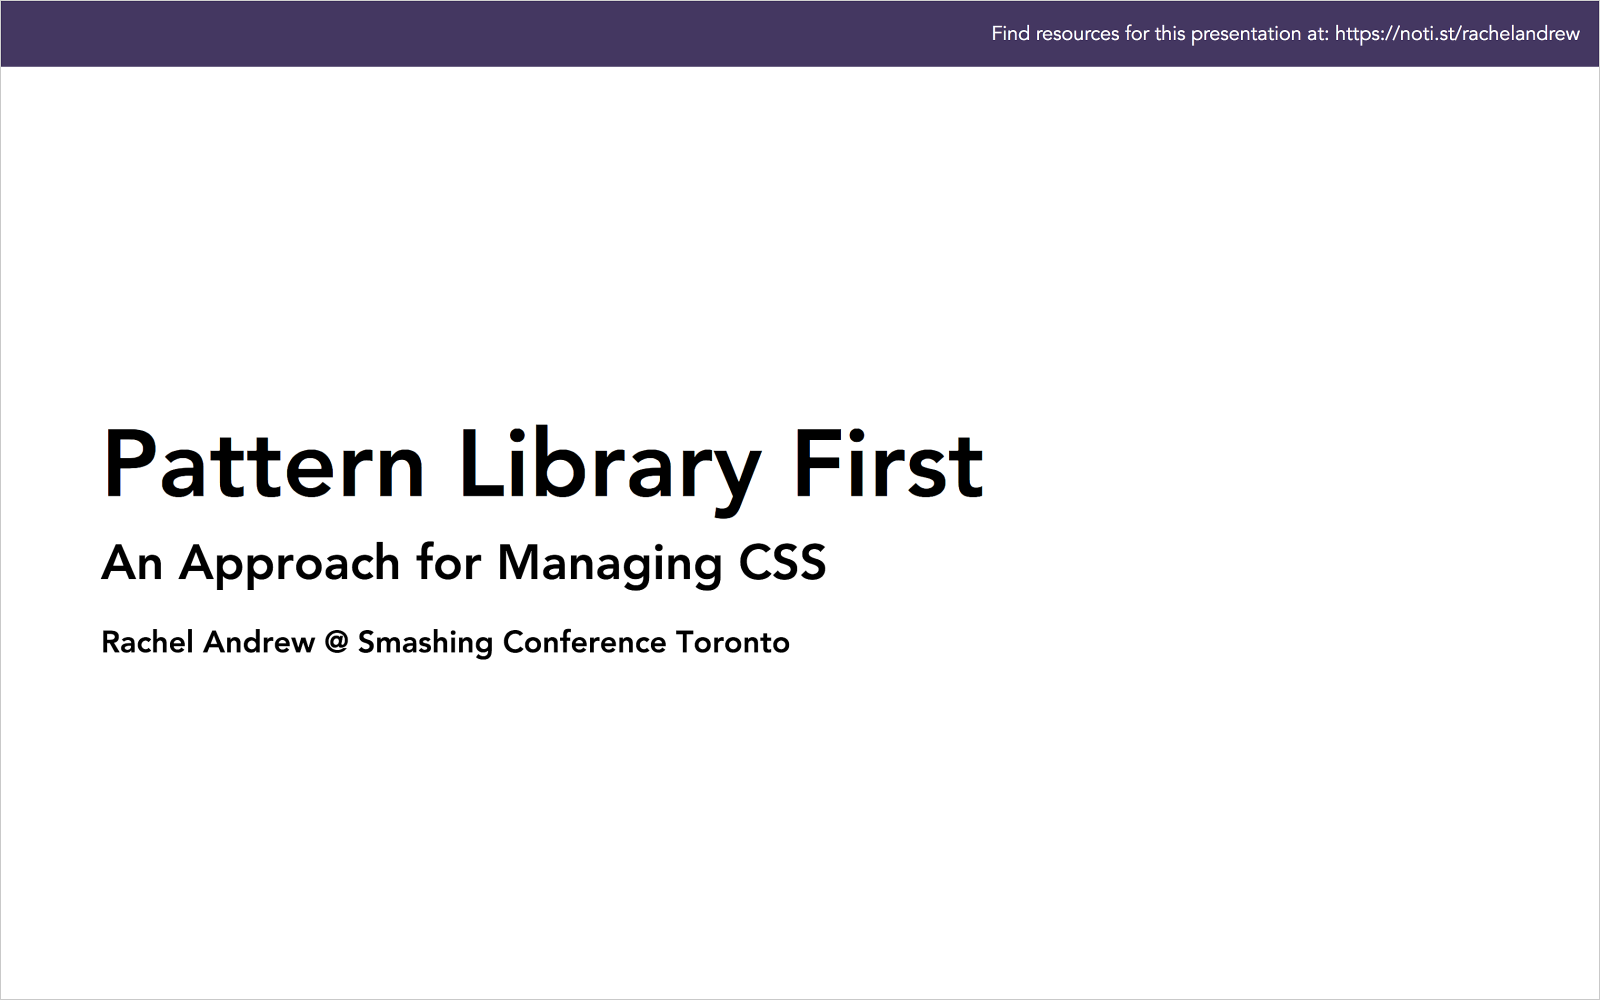 Pattern Library First: An Approach for Managing CSS